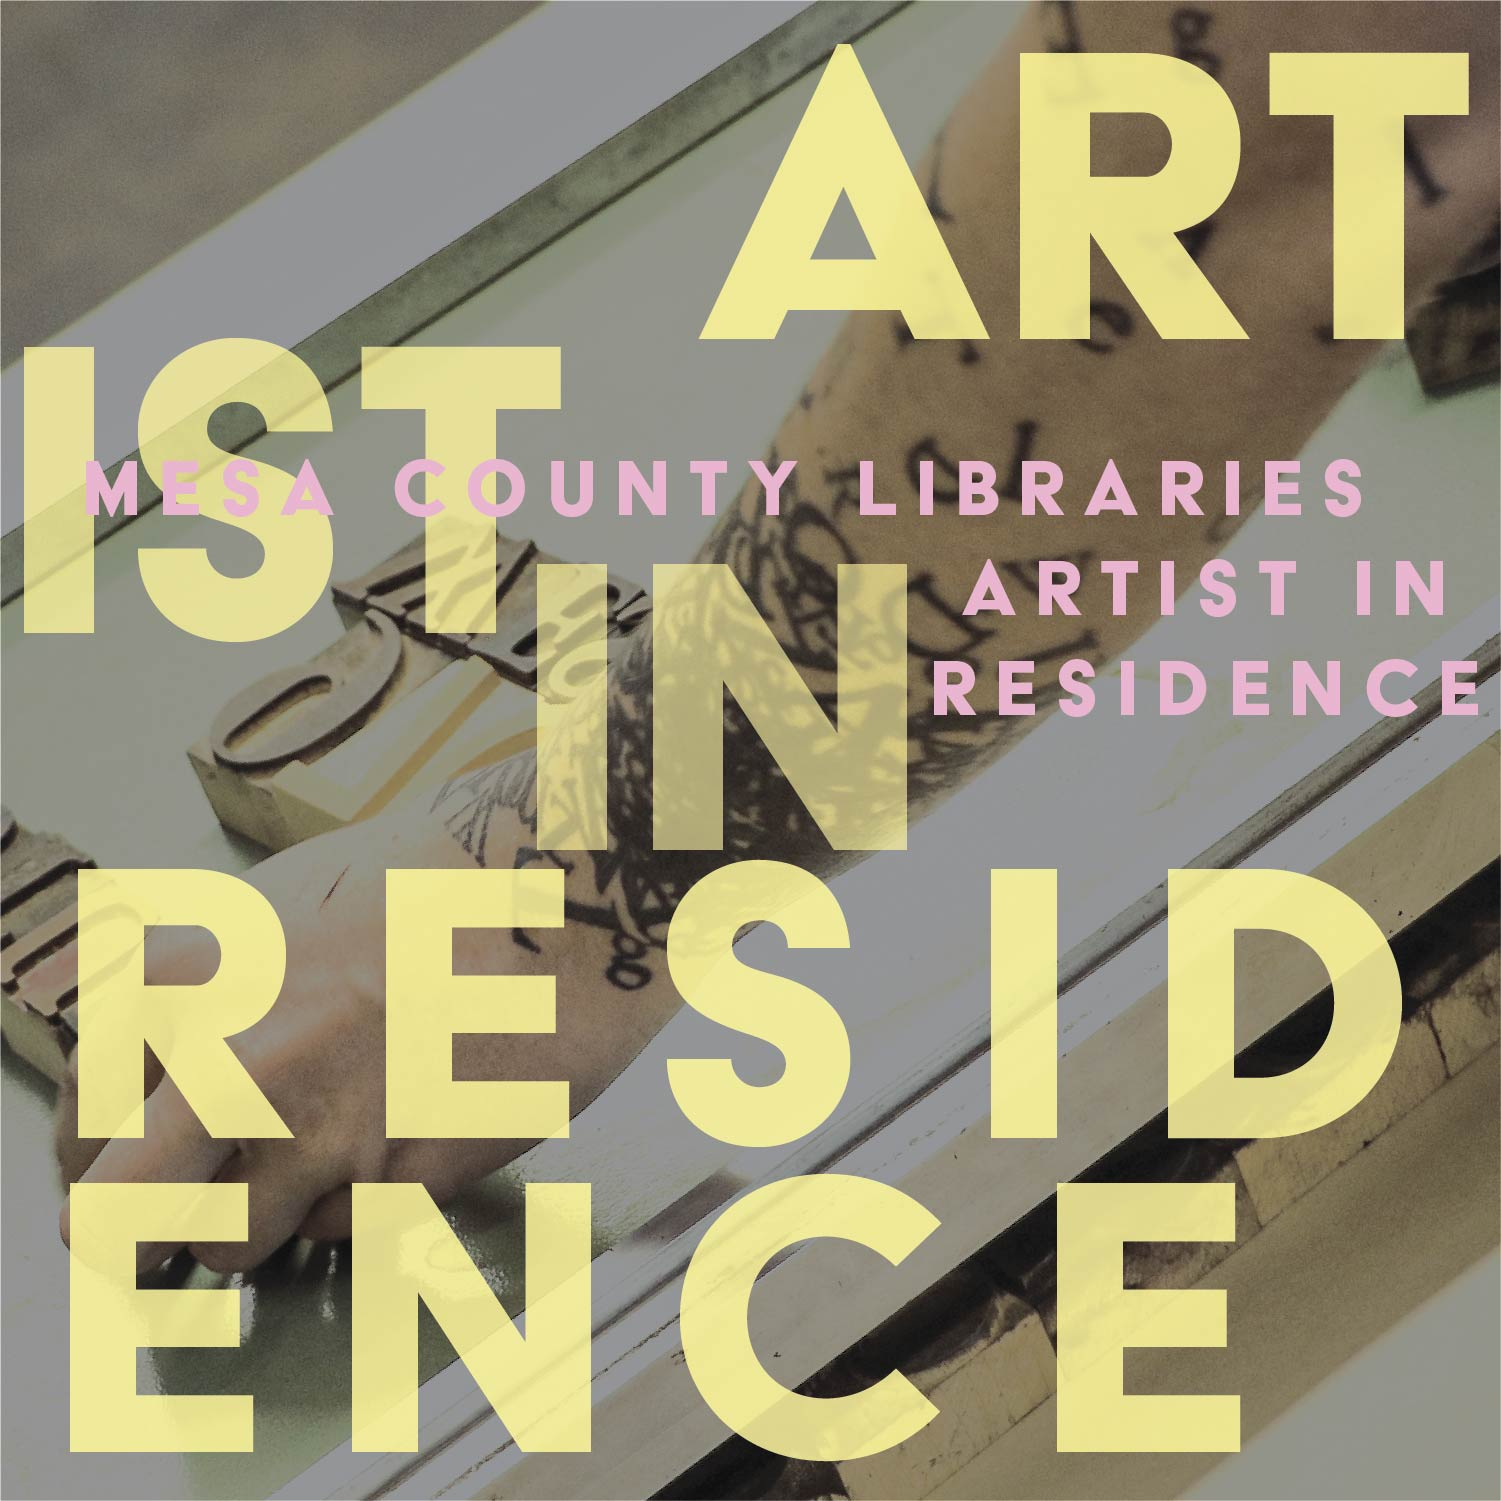 Graphic depicting Artist in Residence program